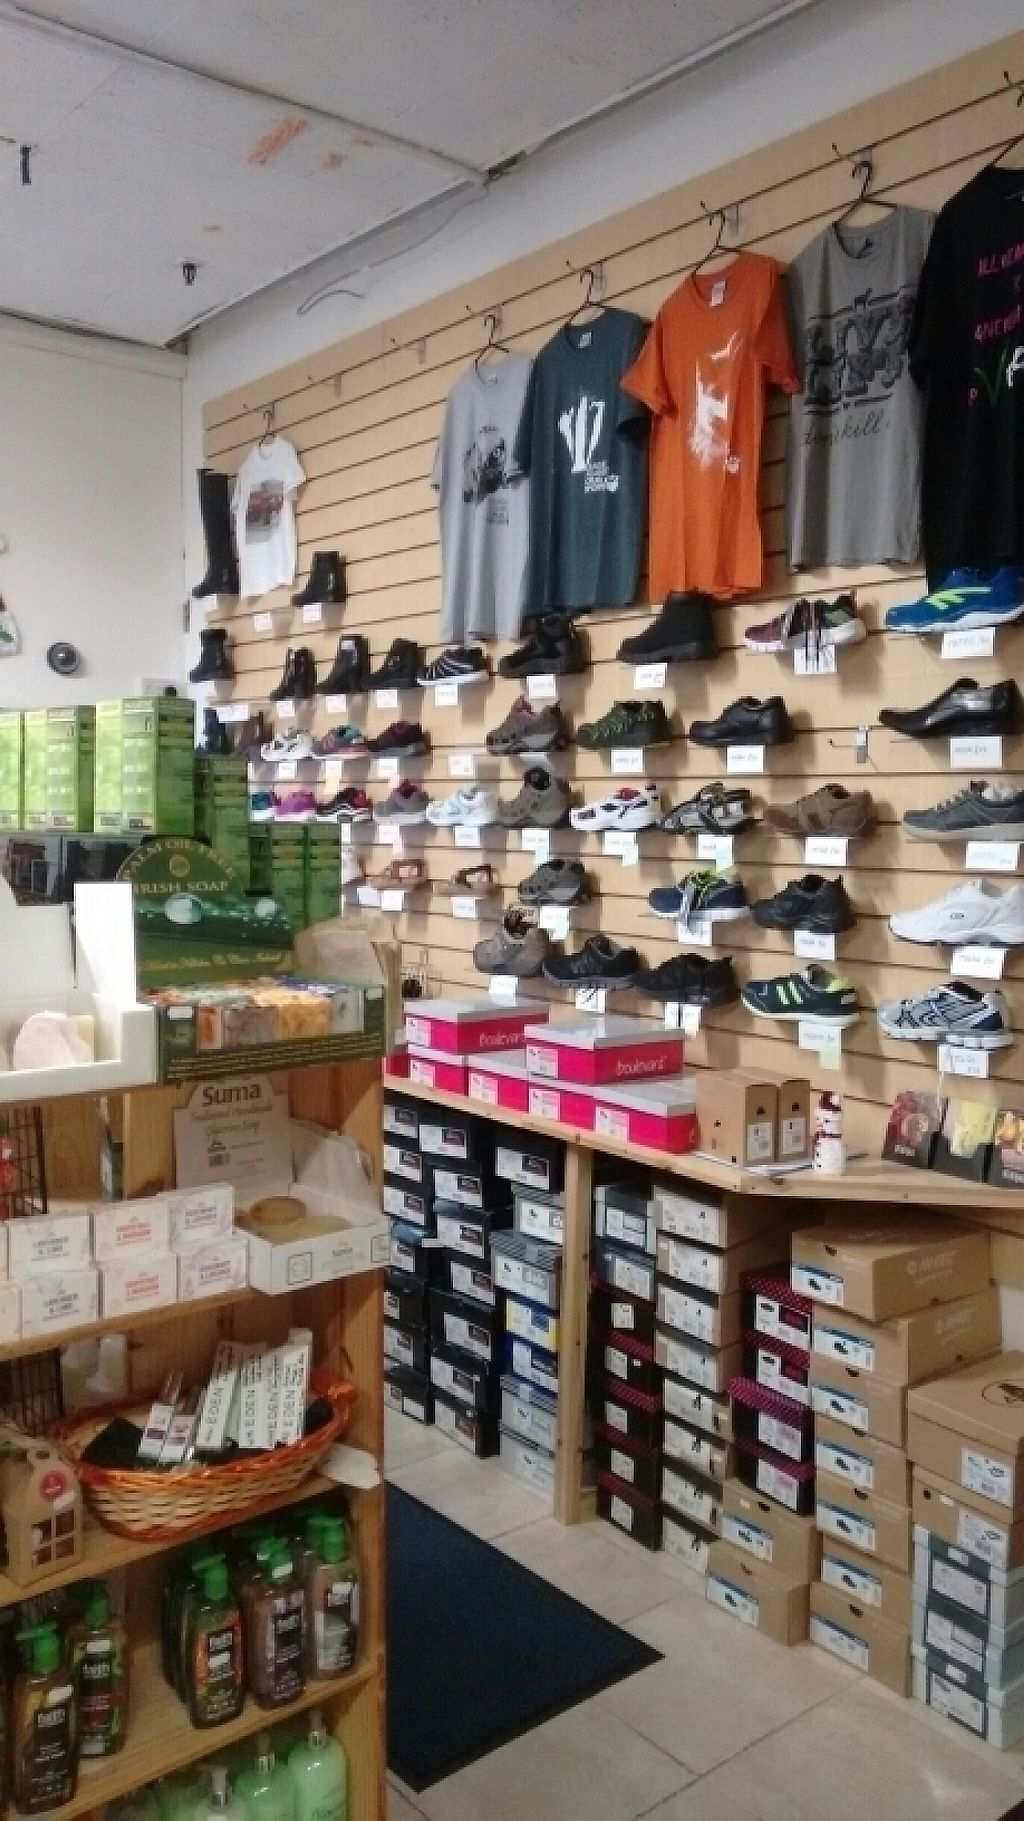 """Photo of Alternative Stores  by <a href=""""/members/profile/craigmc"""">craigmc</a> <br/>shoes <br/> December 10, 2016  - <a href='/contact/abuse/image/15169/198896'>Report</a>"""